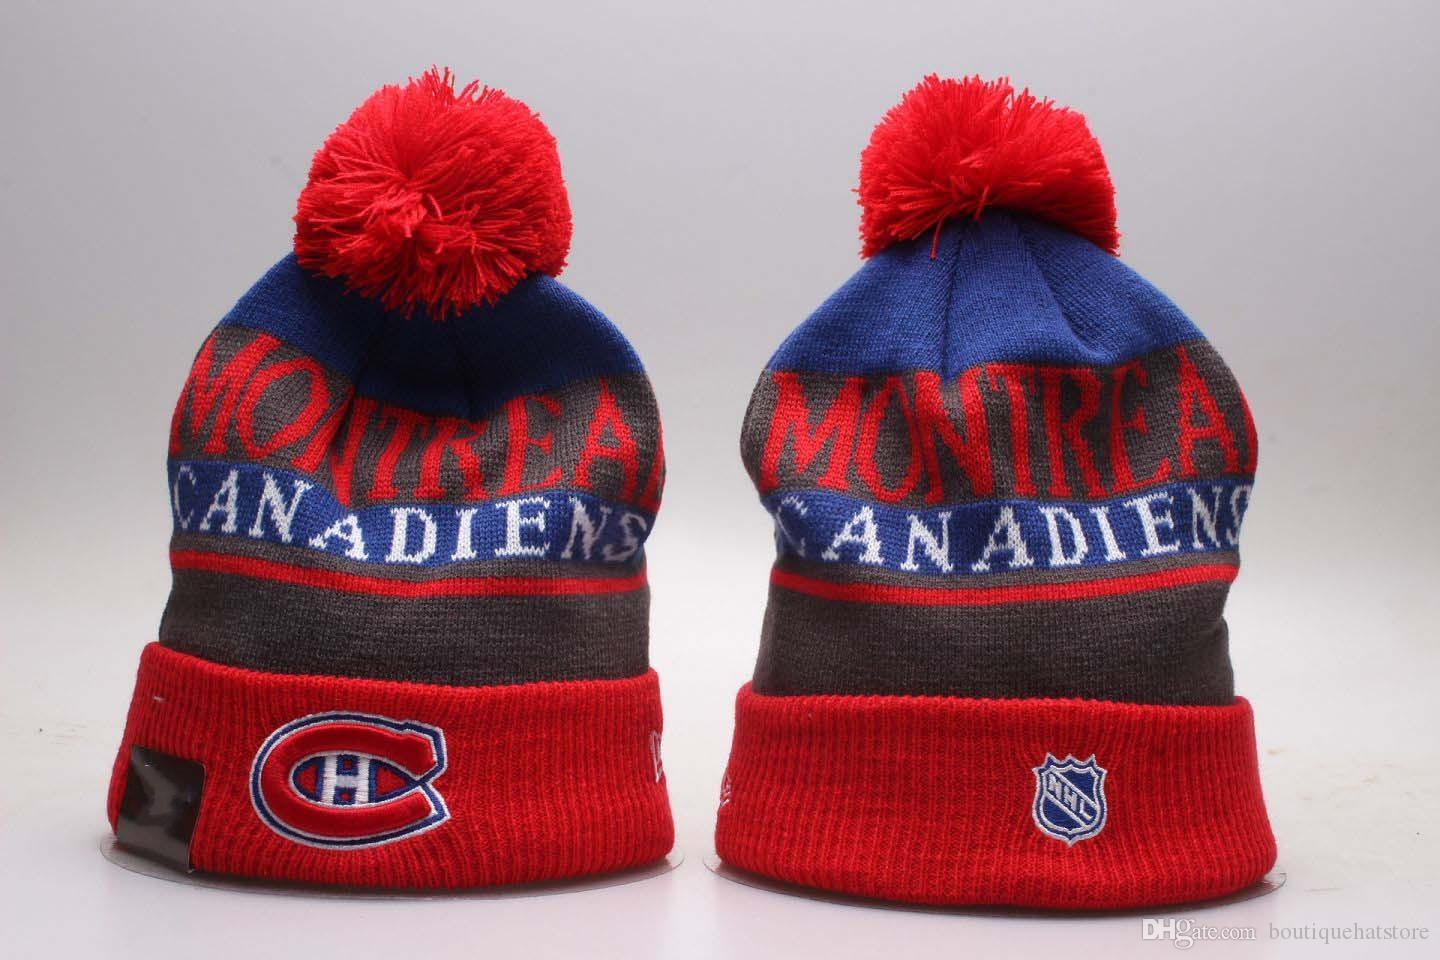 9554818ca215c 2018 New Montreal Sport Knitted Beanies Winter Warm Skull Hats Ice Hockey  Canadiens Vintage Pom Embroidery Team Logo Cuff Beanie Caps Funny Hats  Baseball ...